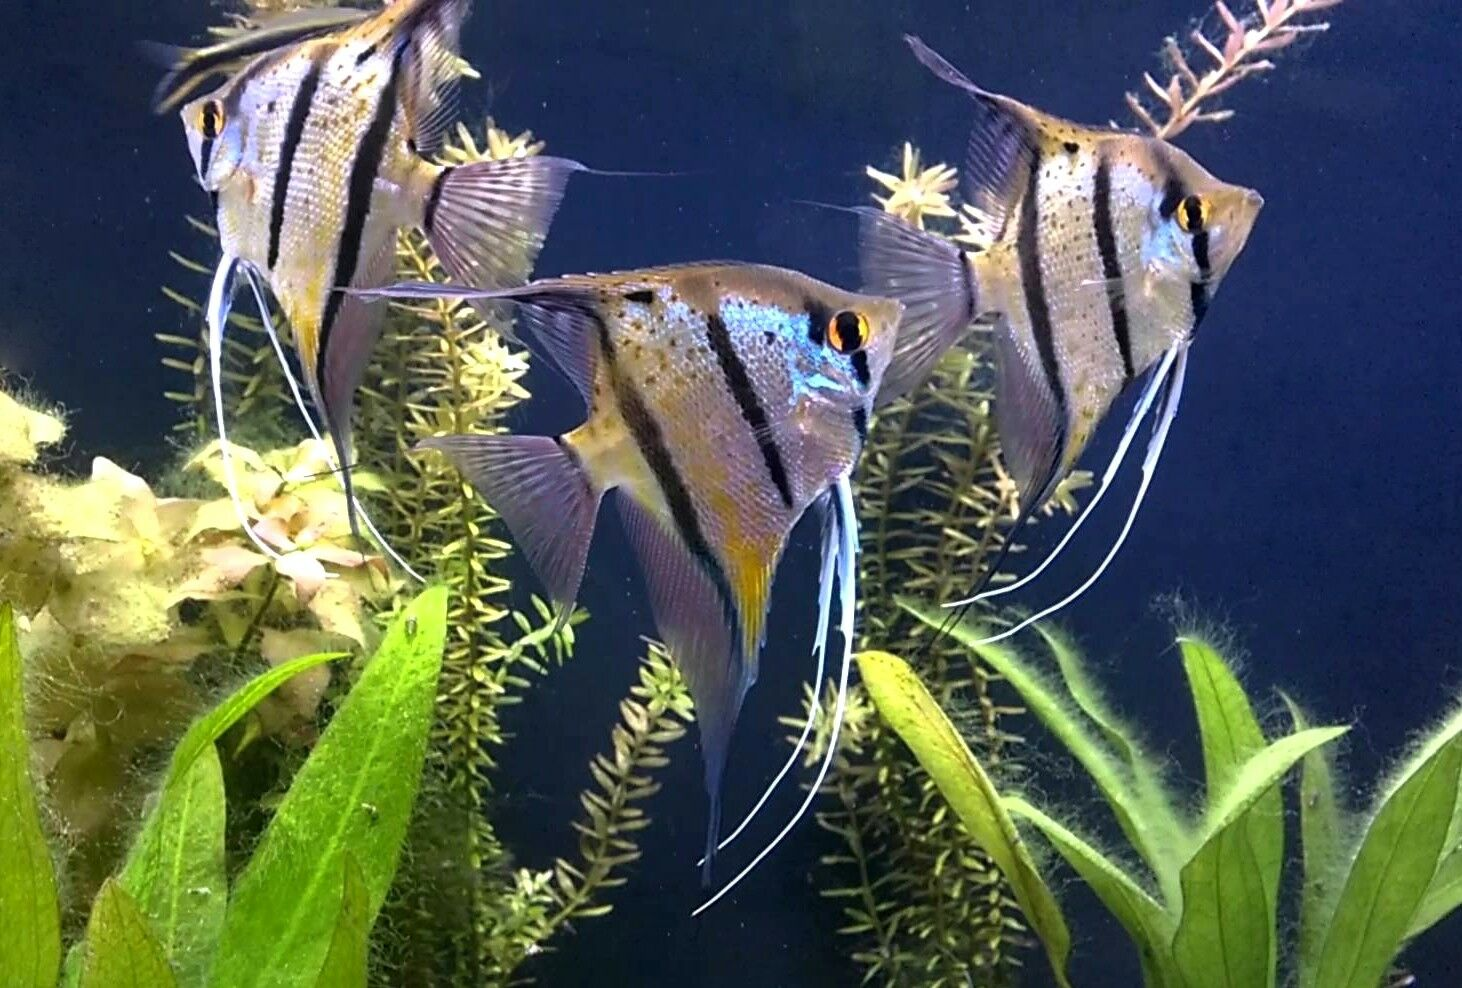 Pair of Río Nanay Angelfish (Pterophyllum scalare, Cichlid)